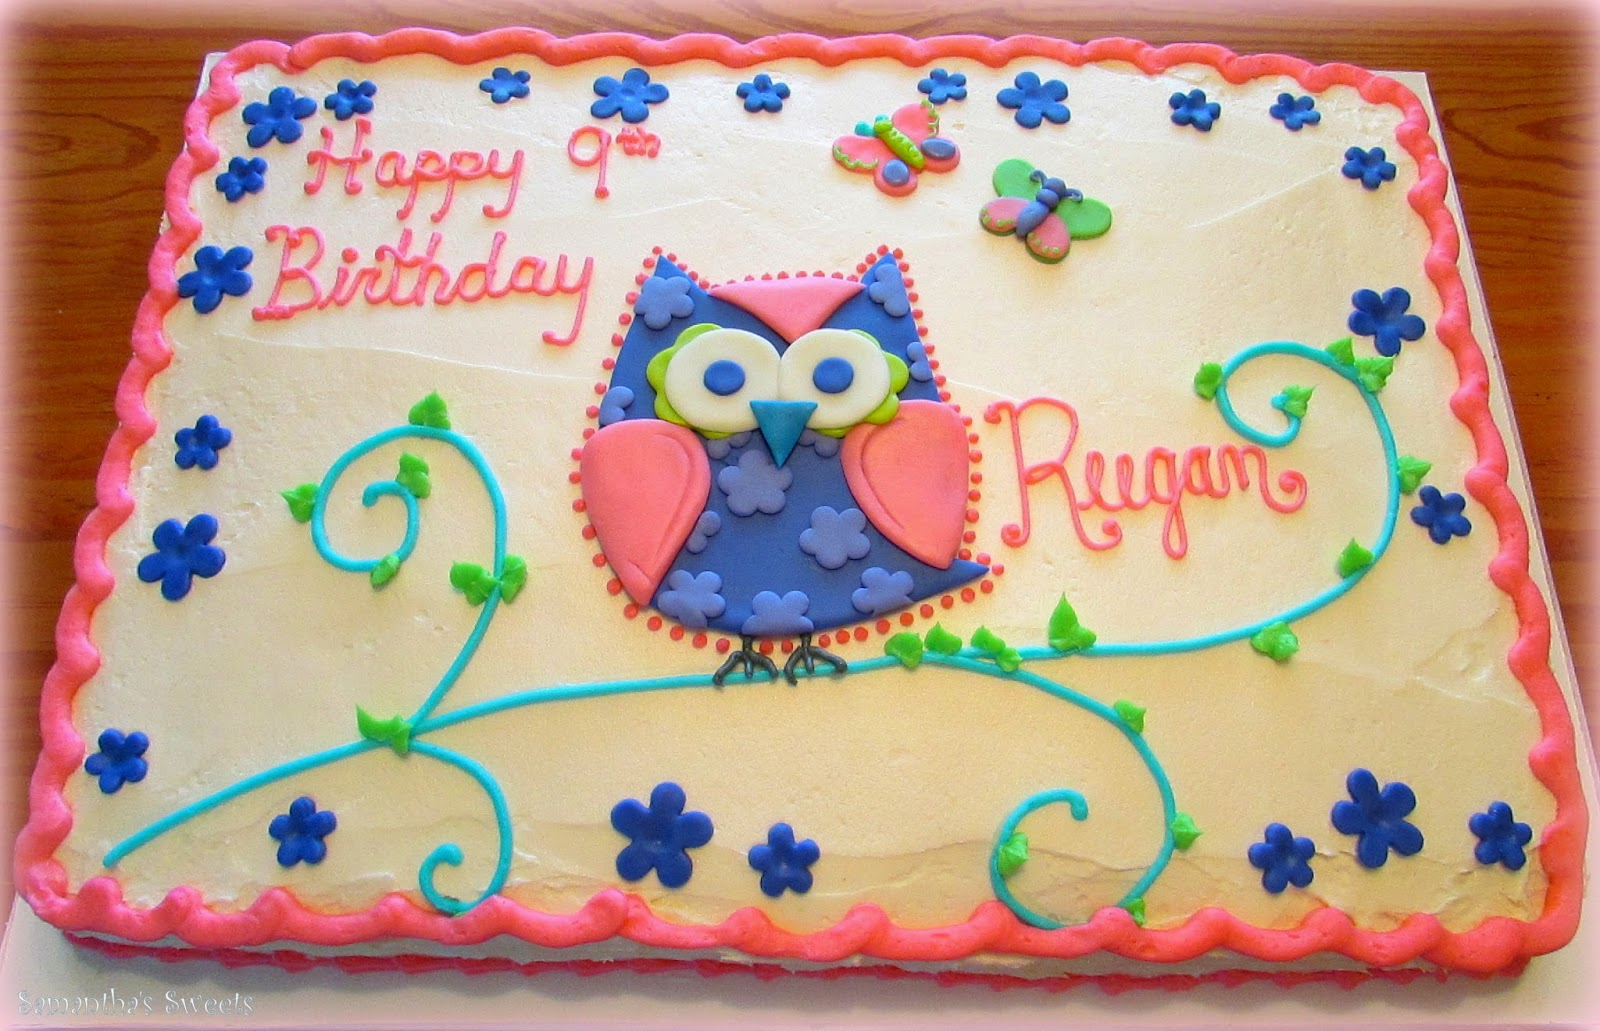 Samanthas Sweets And Sams Sweet Art Birthday Cake Photo Gallery